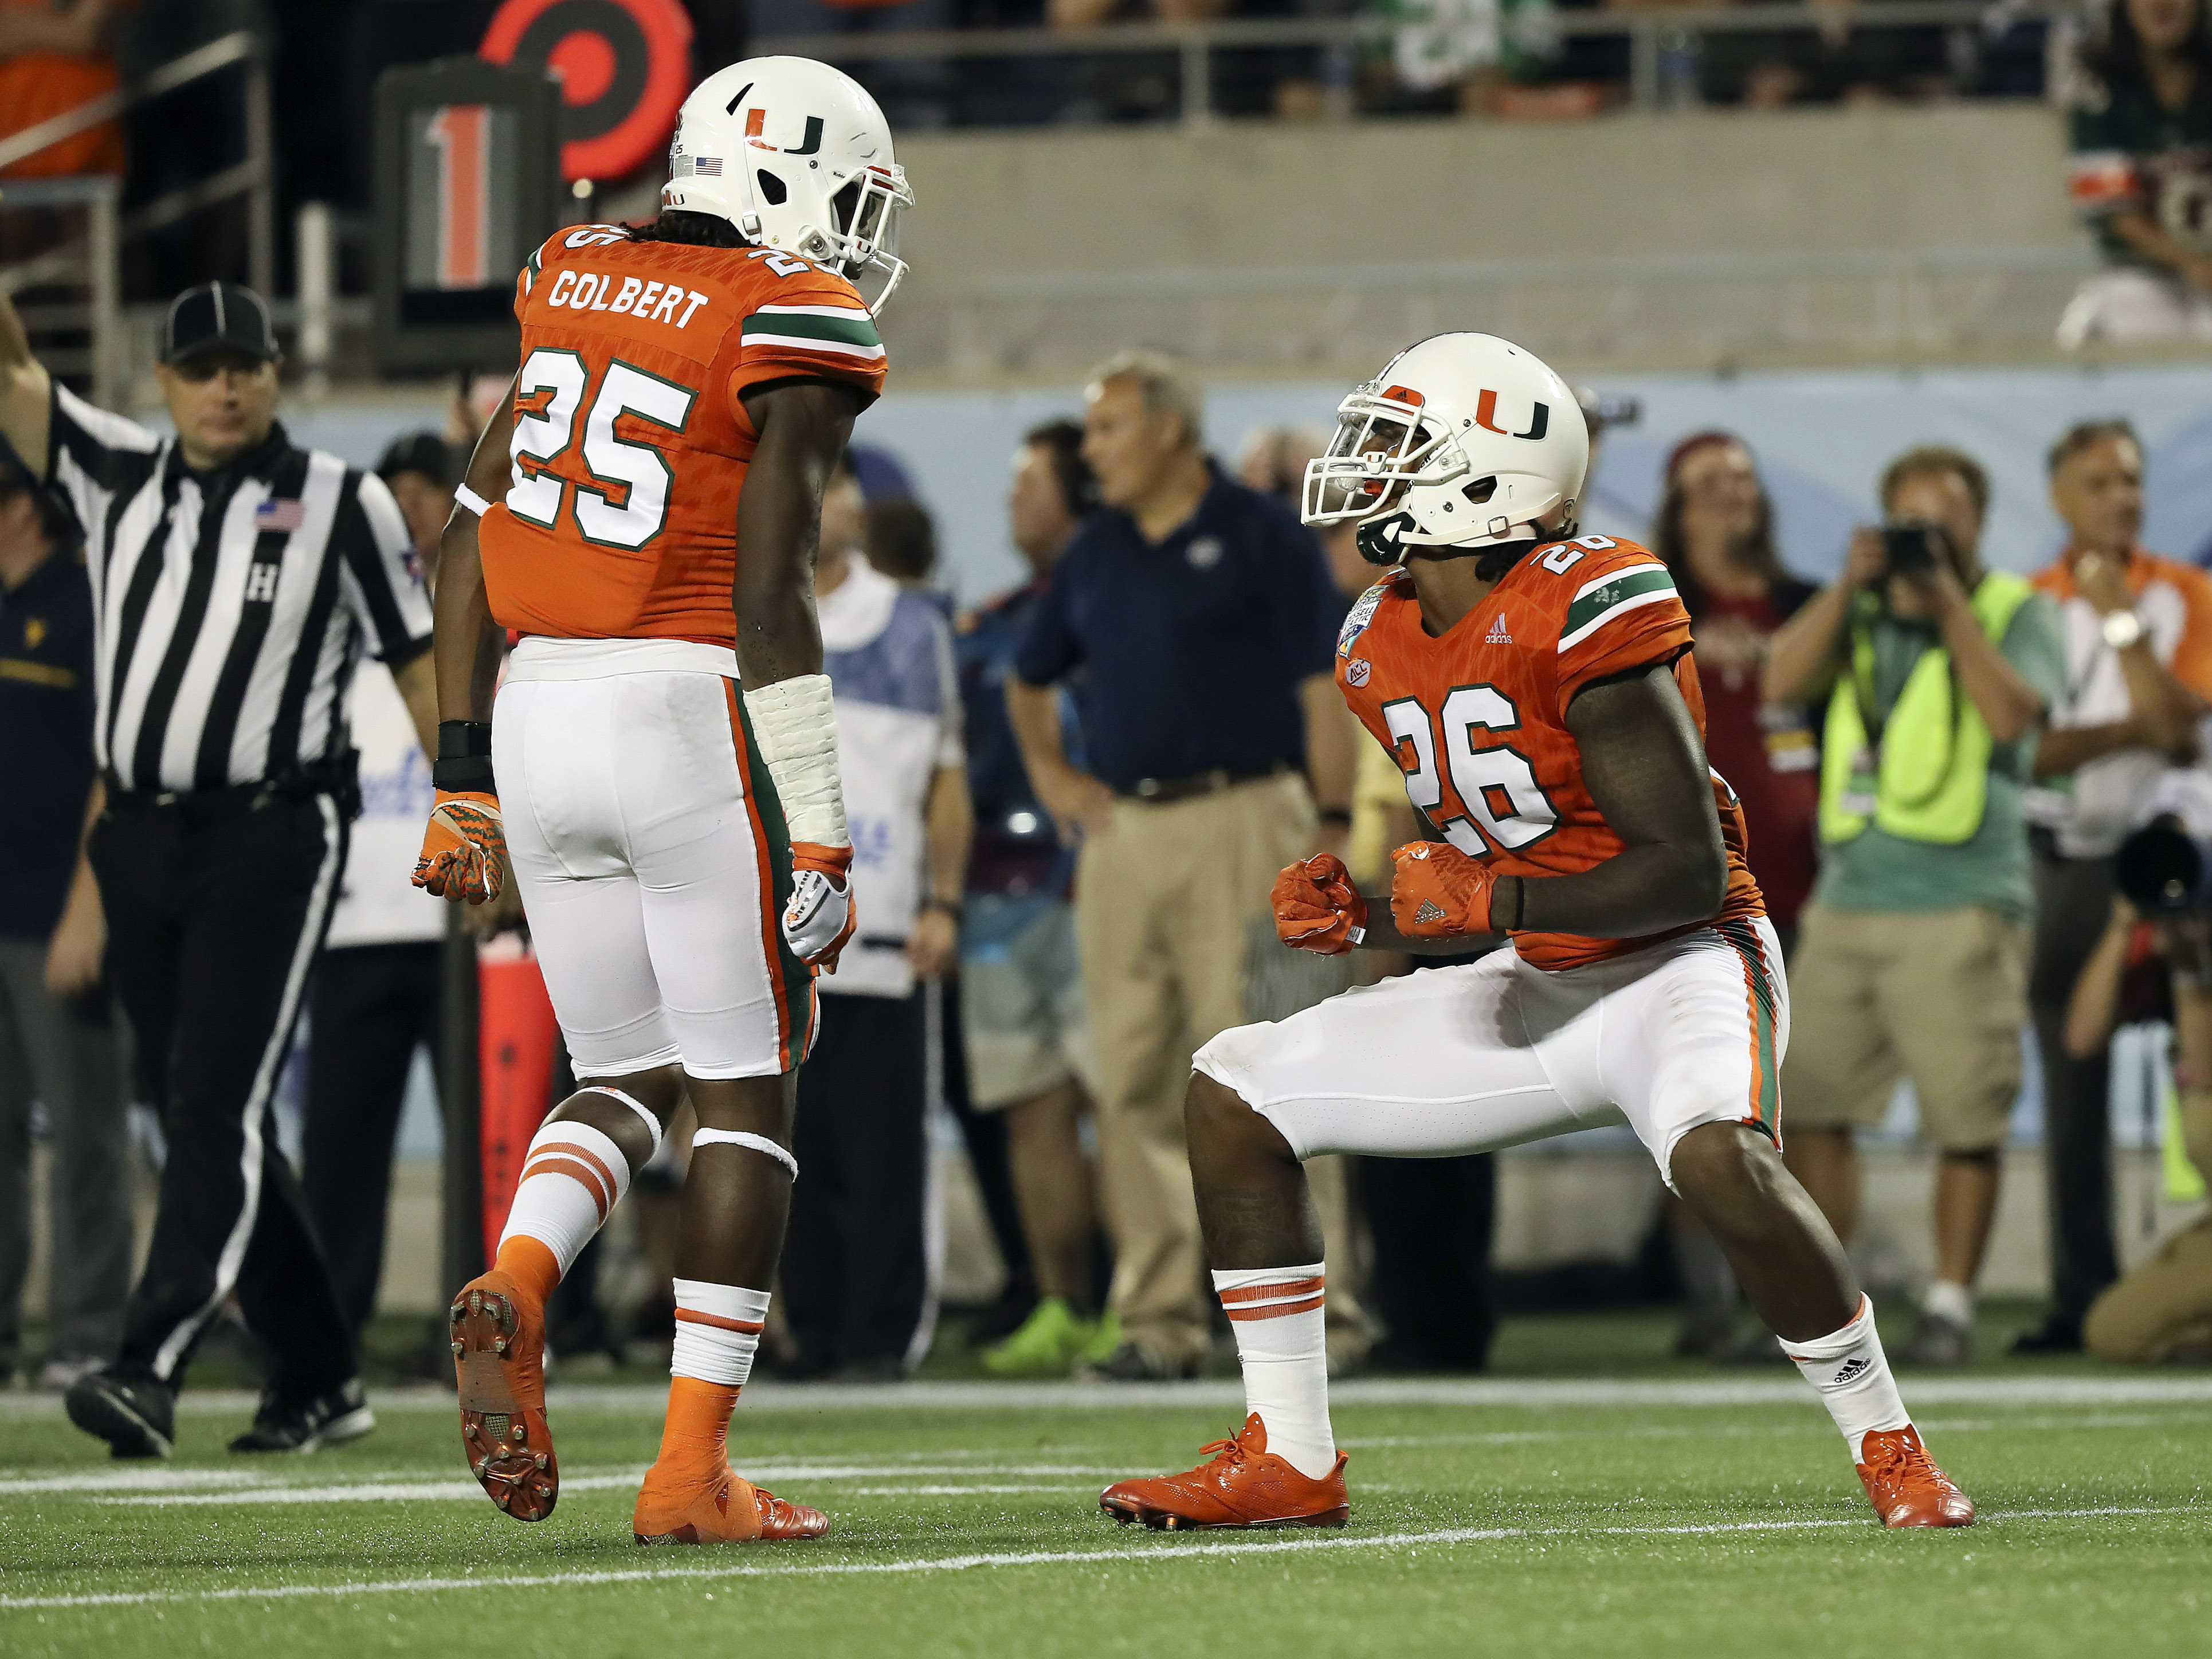 9773022-ncaa-football-russell-athletic-bowl-west-virginia-vs-miami-1